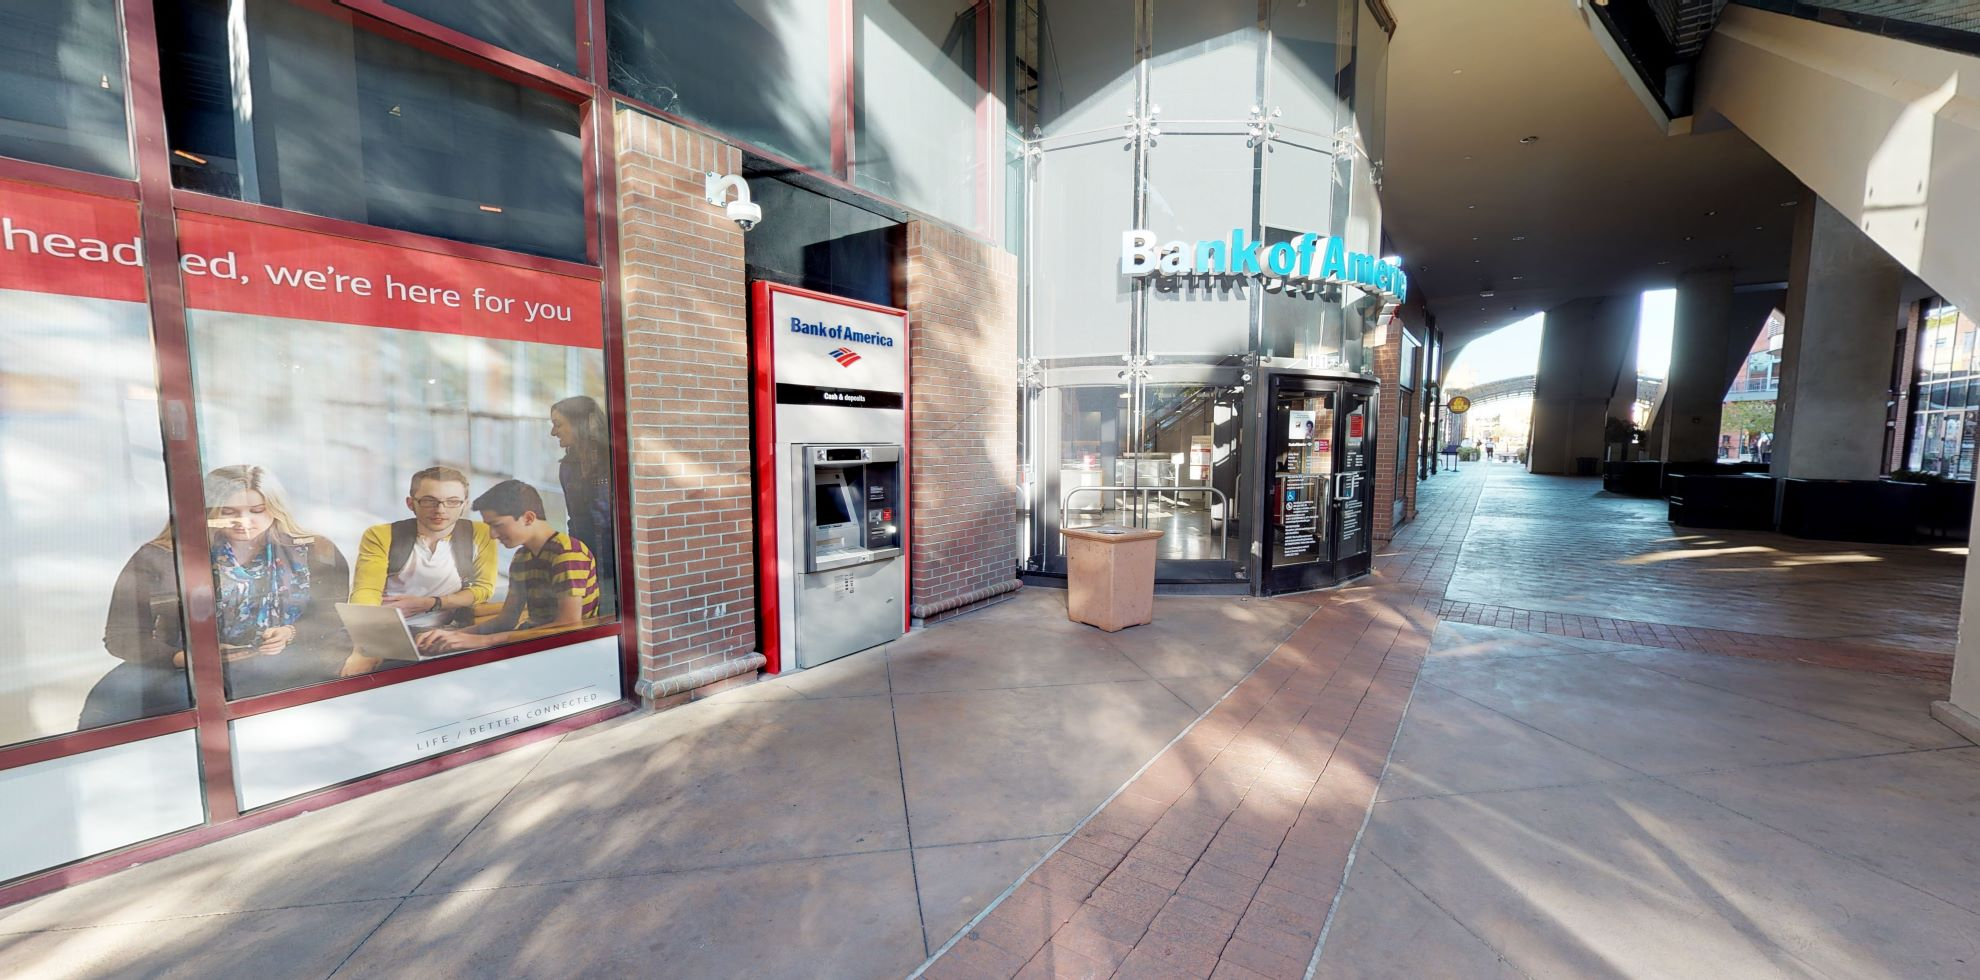 Bank of America financial center with drive-thru ATM | 699 S Mill Ave STE 101, Tempe, AZ 85281